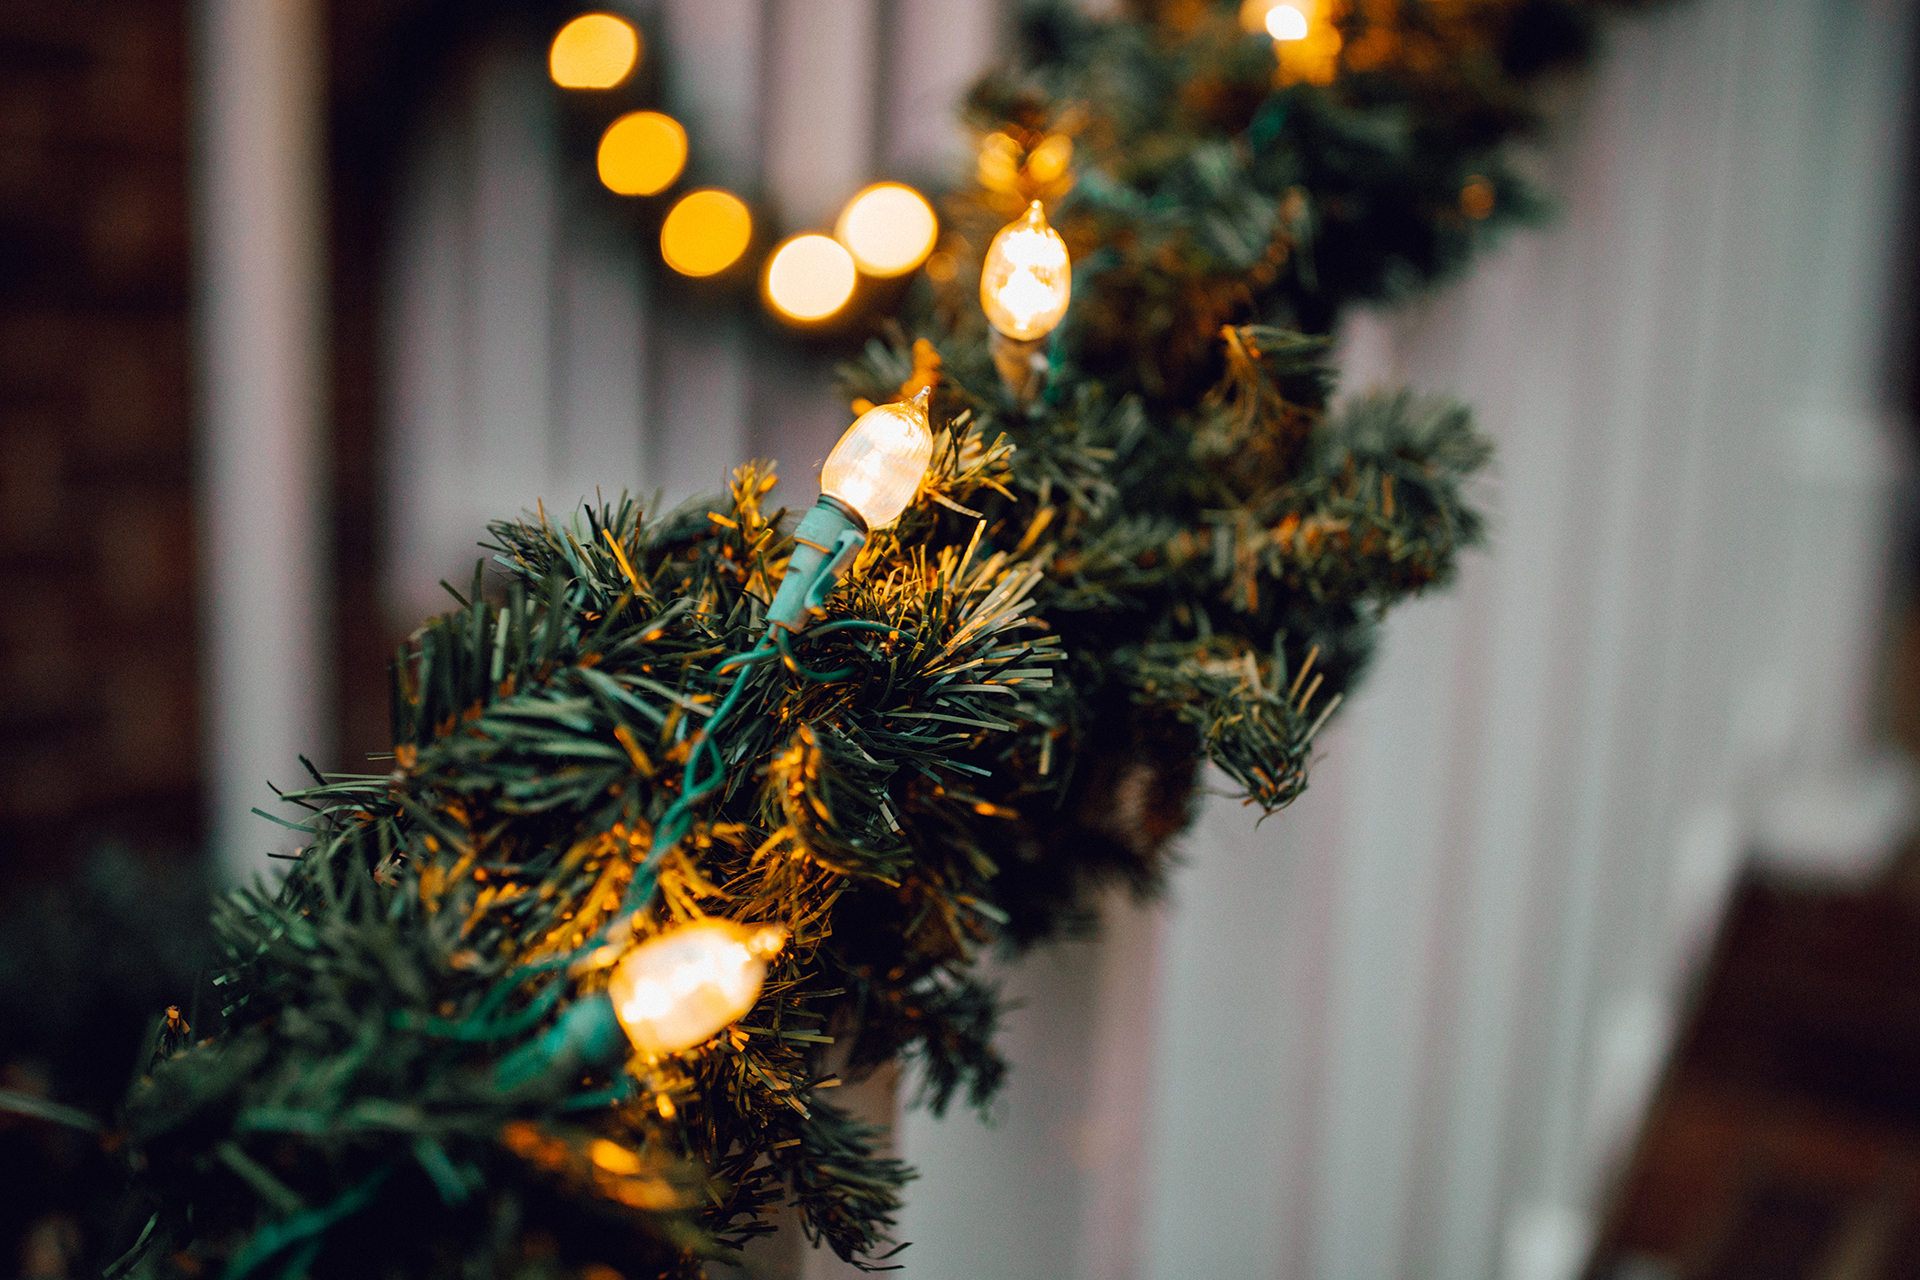 Christmas Decoration Storage: How to